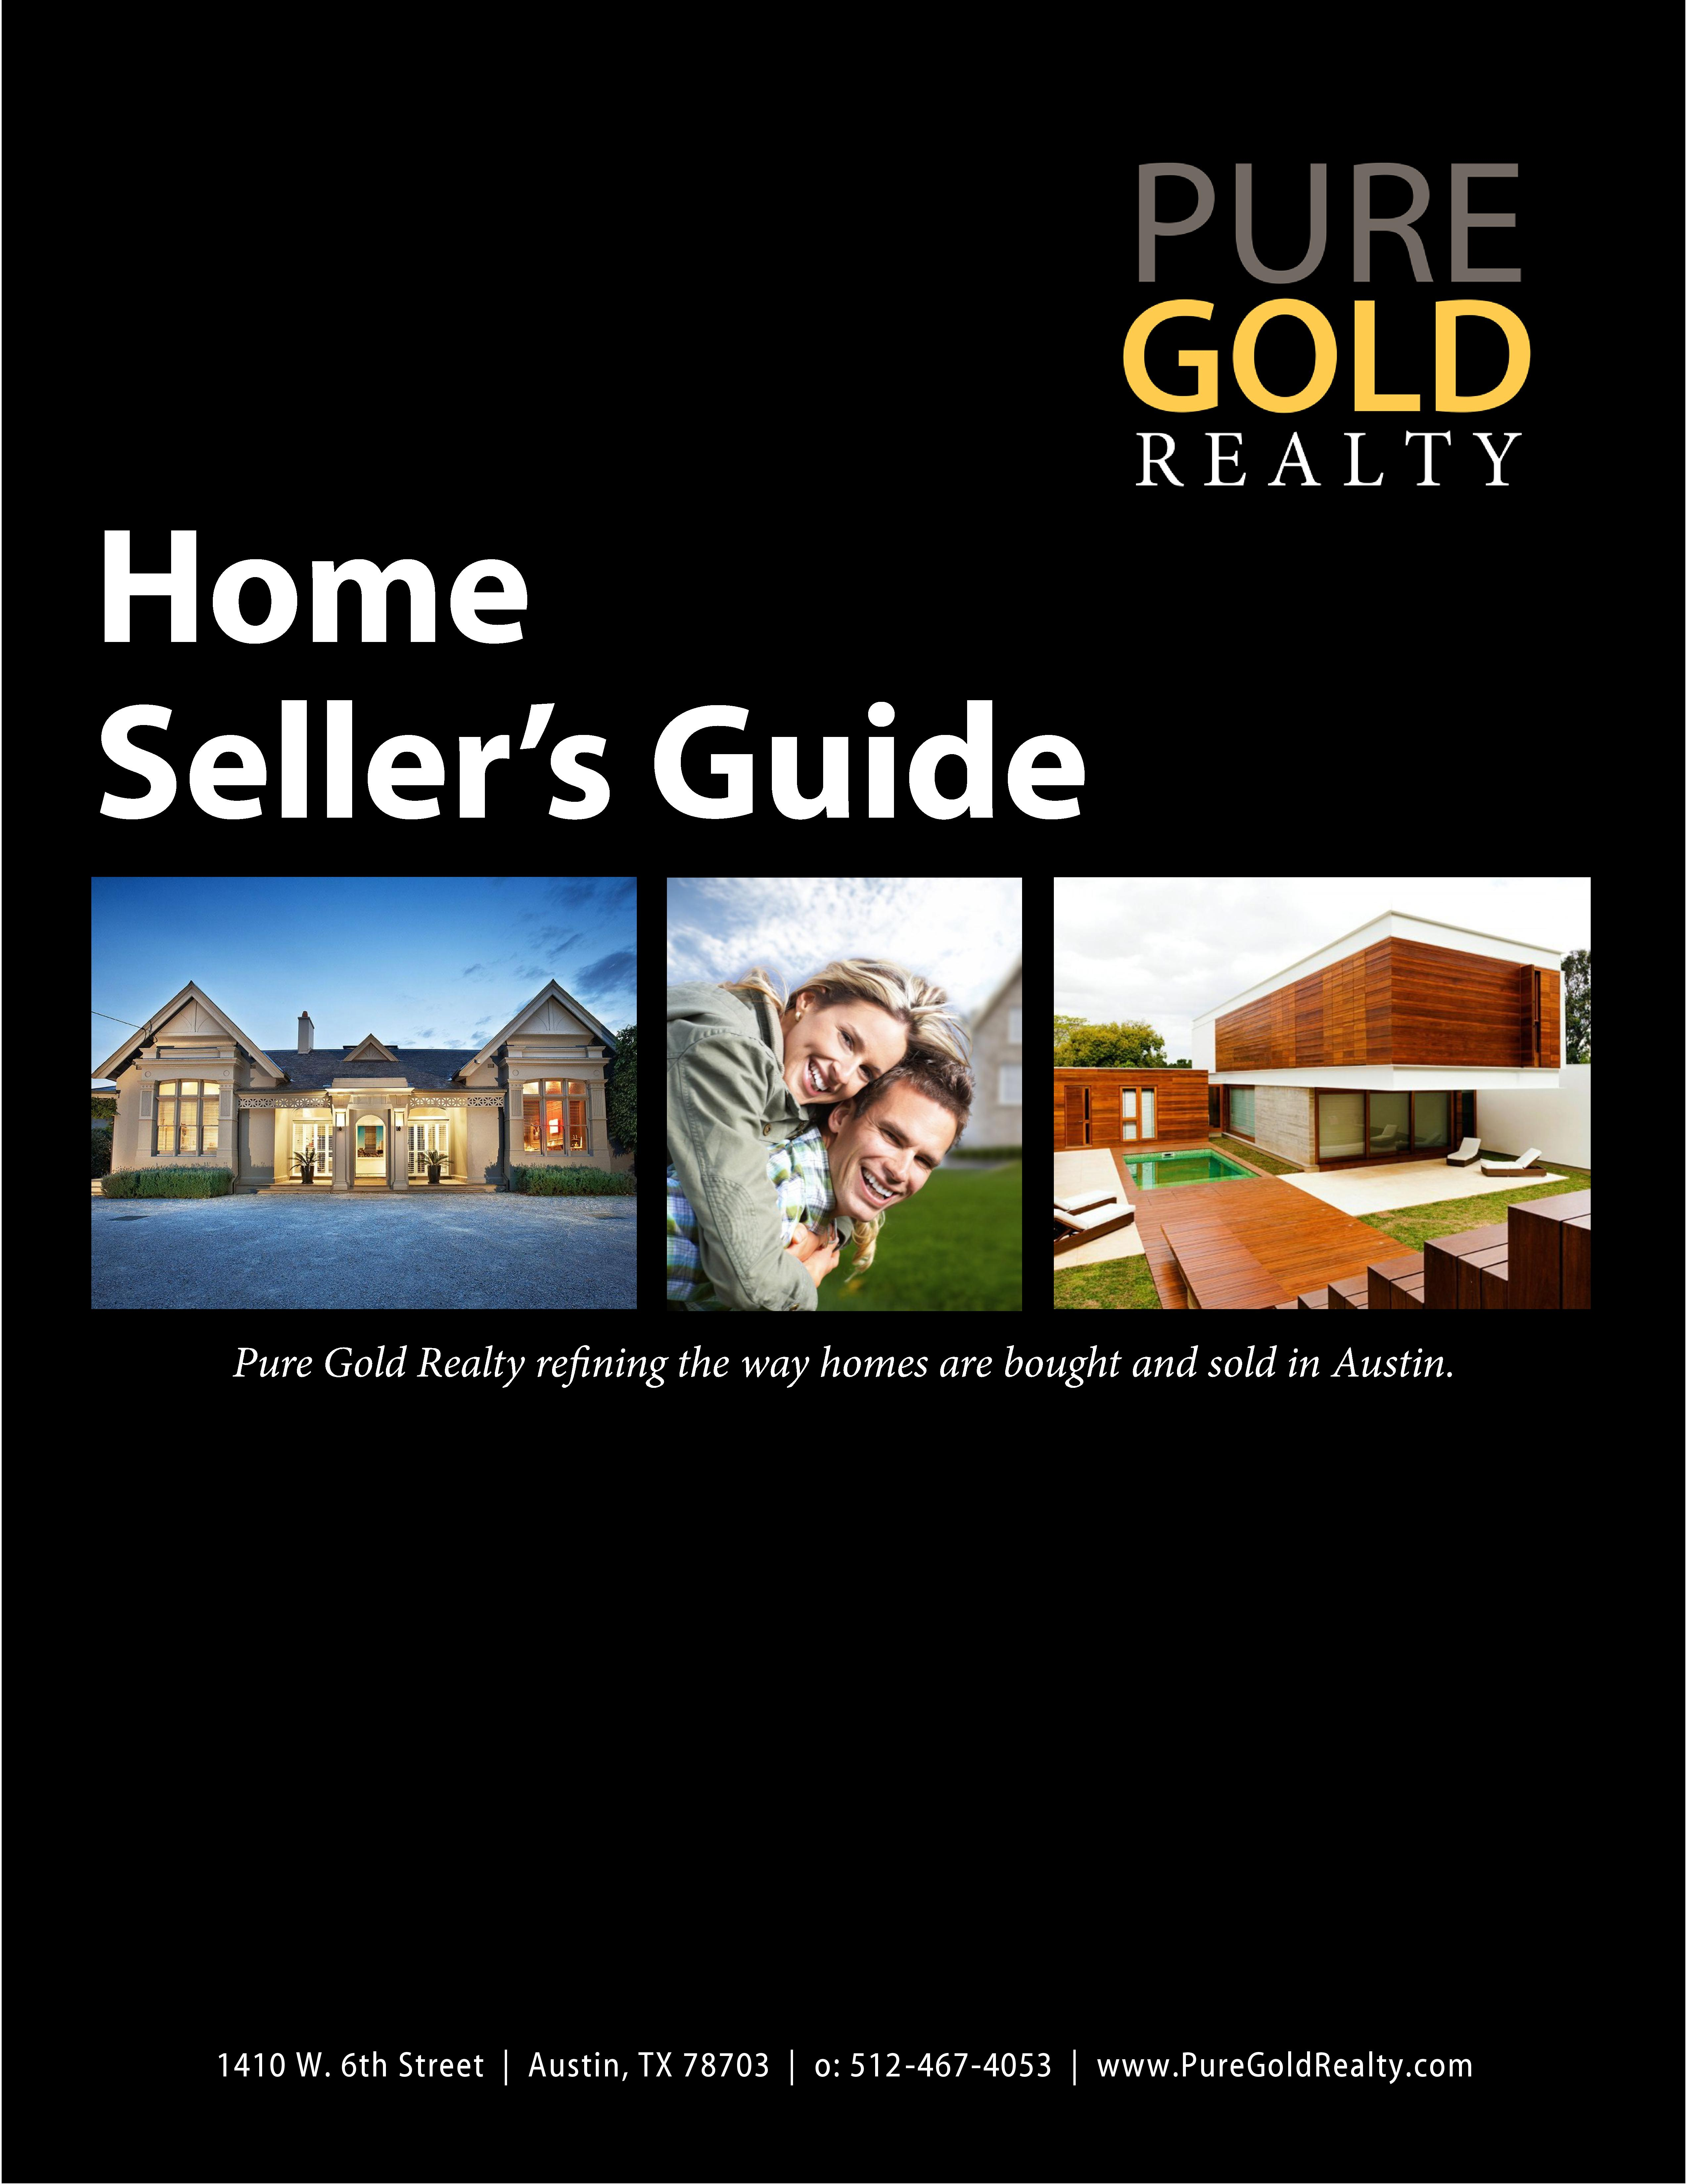 Pure Gold Realty Home Seller's Guide